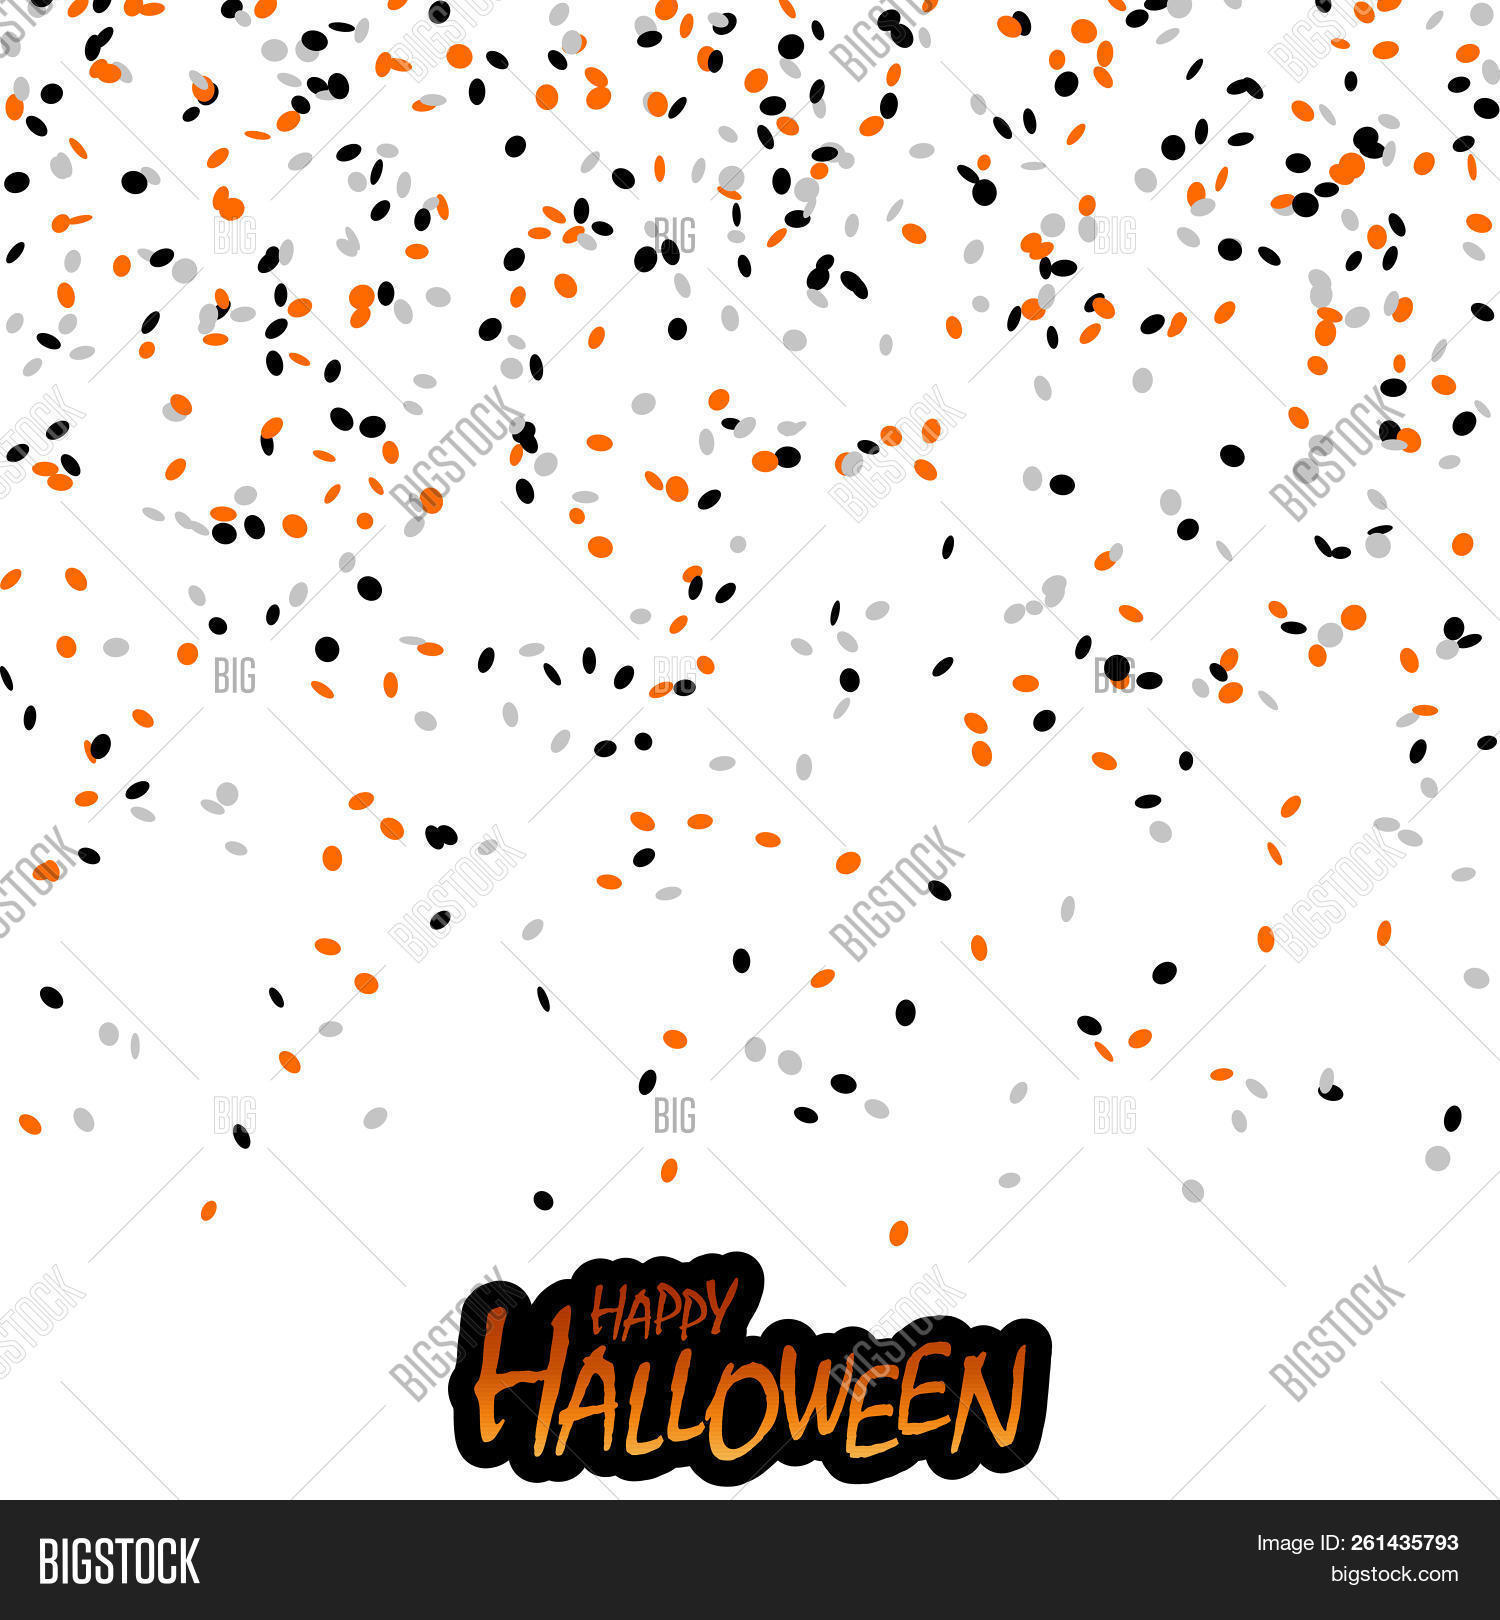 Advertising,Autumn,Background,Celebration,Confetti,Festival,Halloween,Illustration,Invitation,Marketing,October,Party,Vector,White,abstract,black,card,celebrate,dark,decorating,decoration,endless,event,fall,falling,festive,happy,infinite,lettering,off,orange,picture,scary,shudder